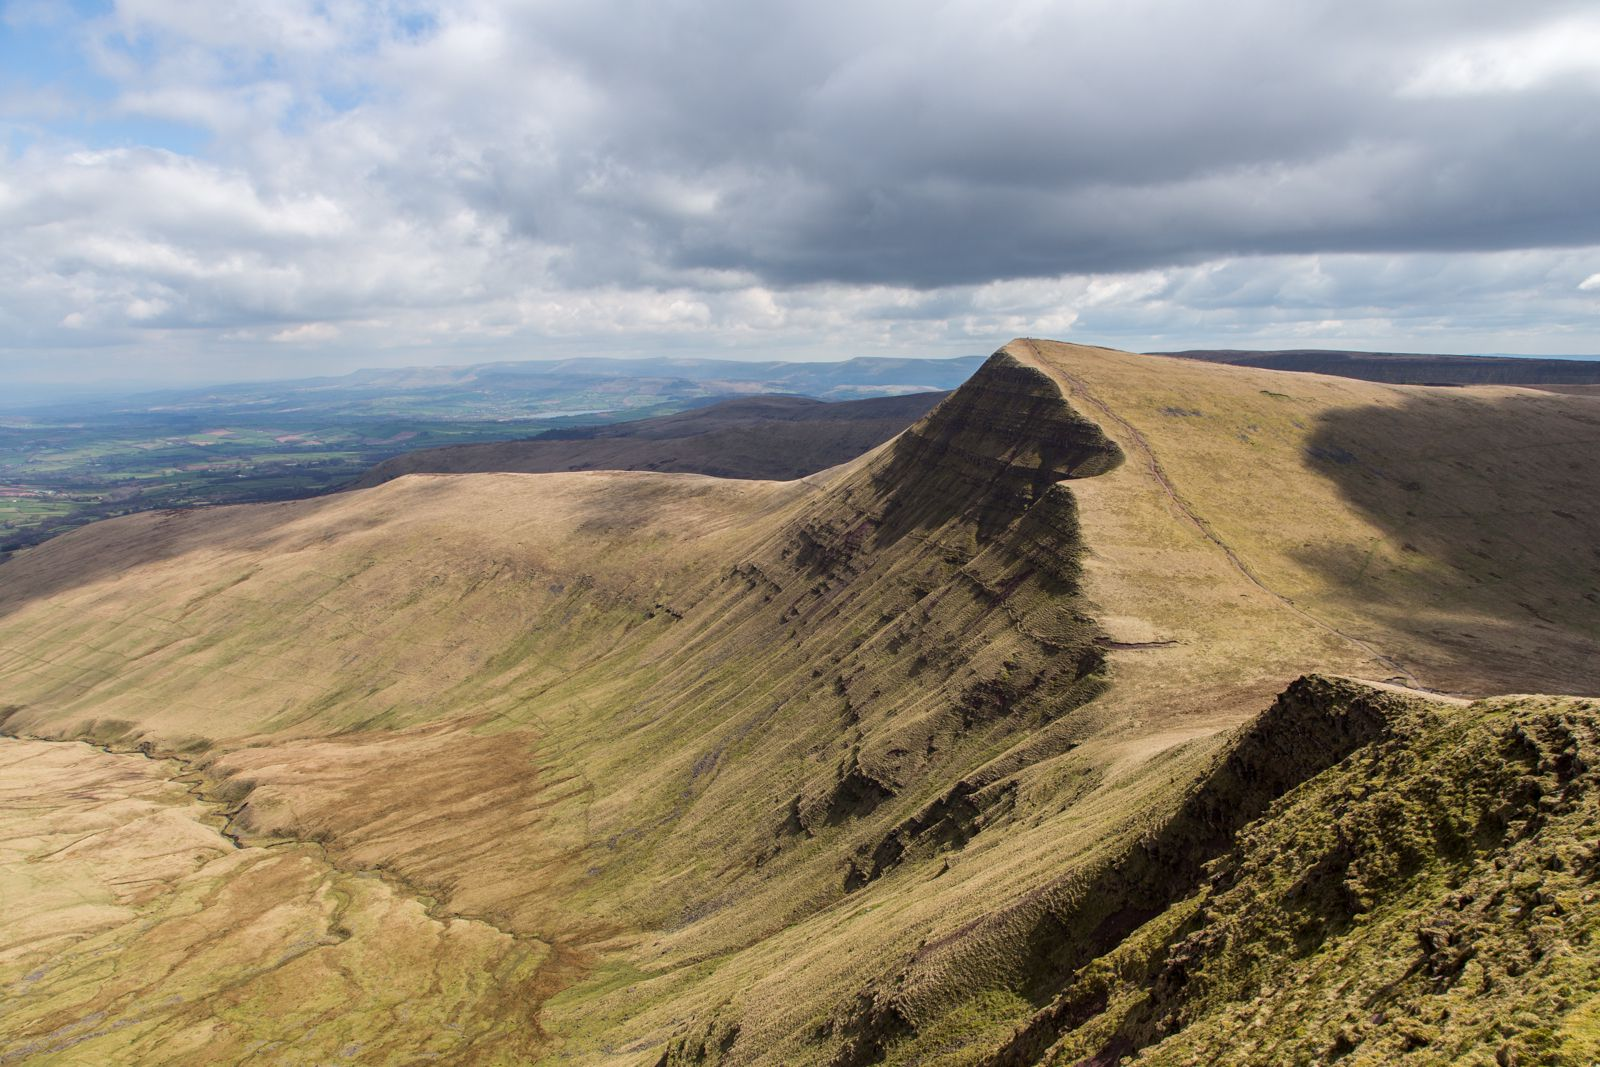 Hotels, Cottages, B&Bs & Glamping in the Brecon Beacons